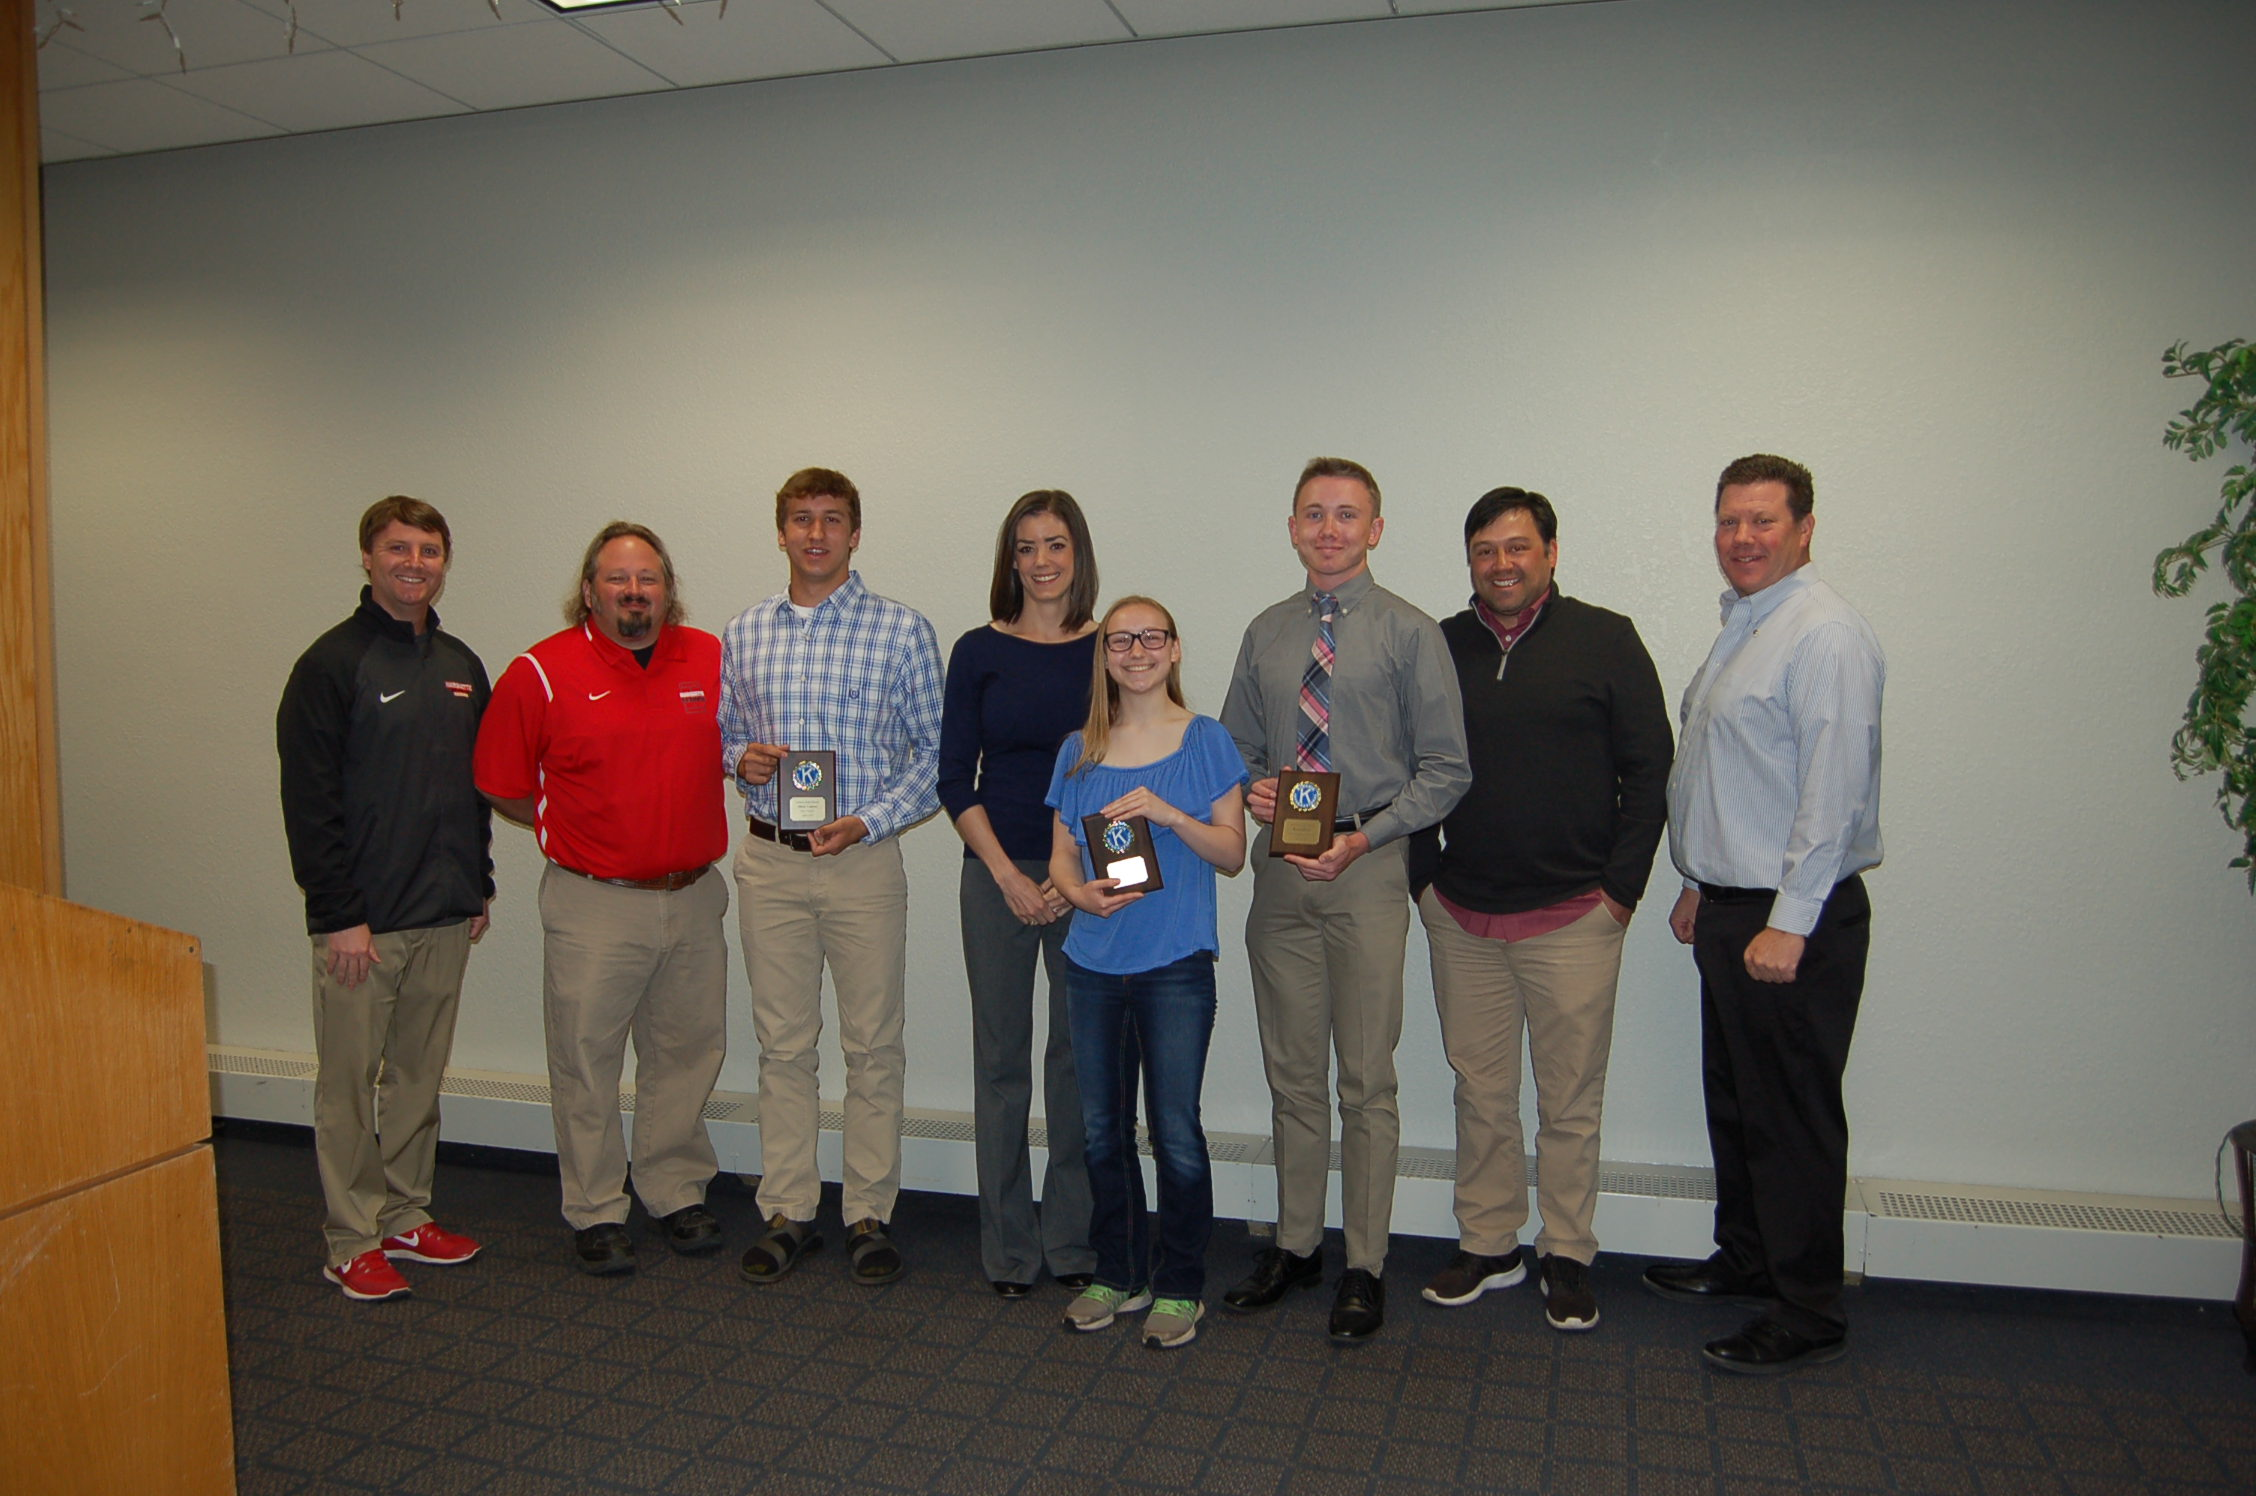 Abby Kroll, Mitch Connon and Ryan Glover Named April Athletes of the Month